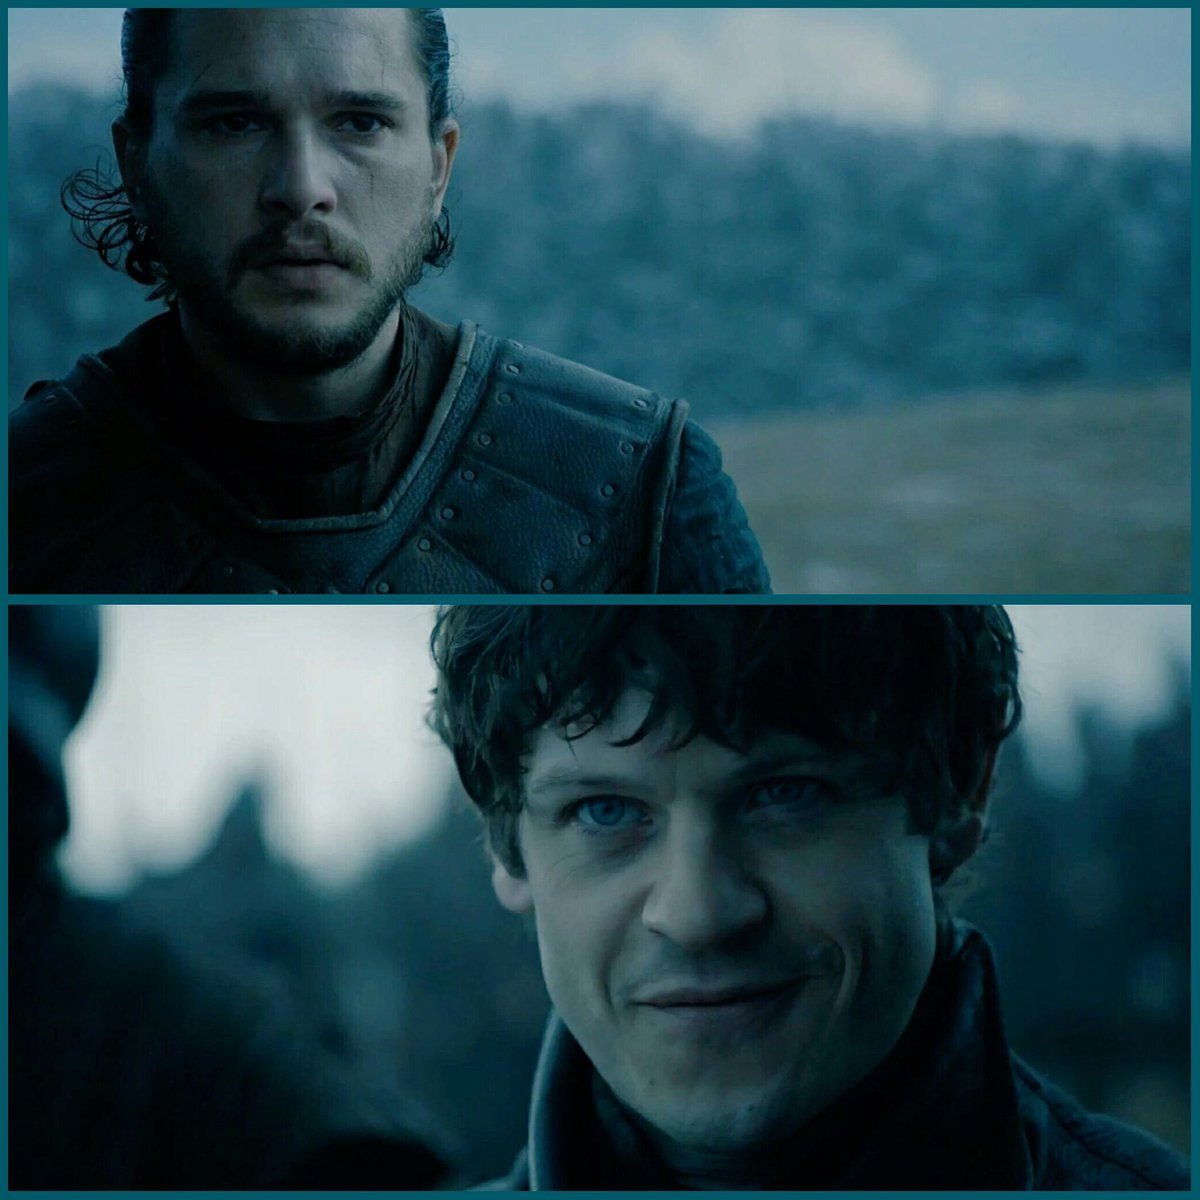 Battle of the bastards on Game of Thrones. Jon Snow vs. Ramsay Bolton! Most epic fight on the show ever.